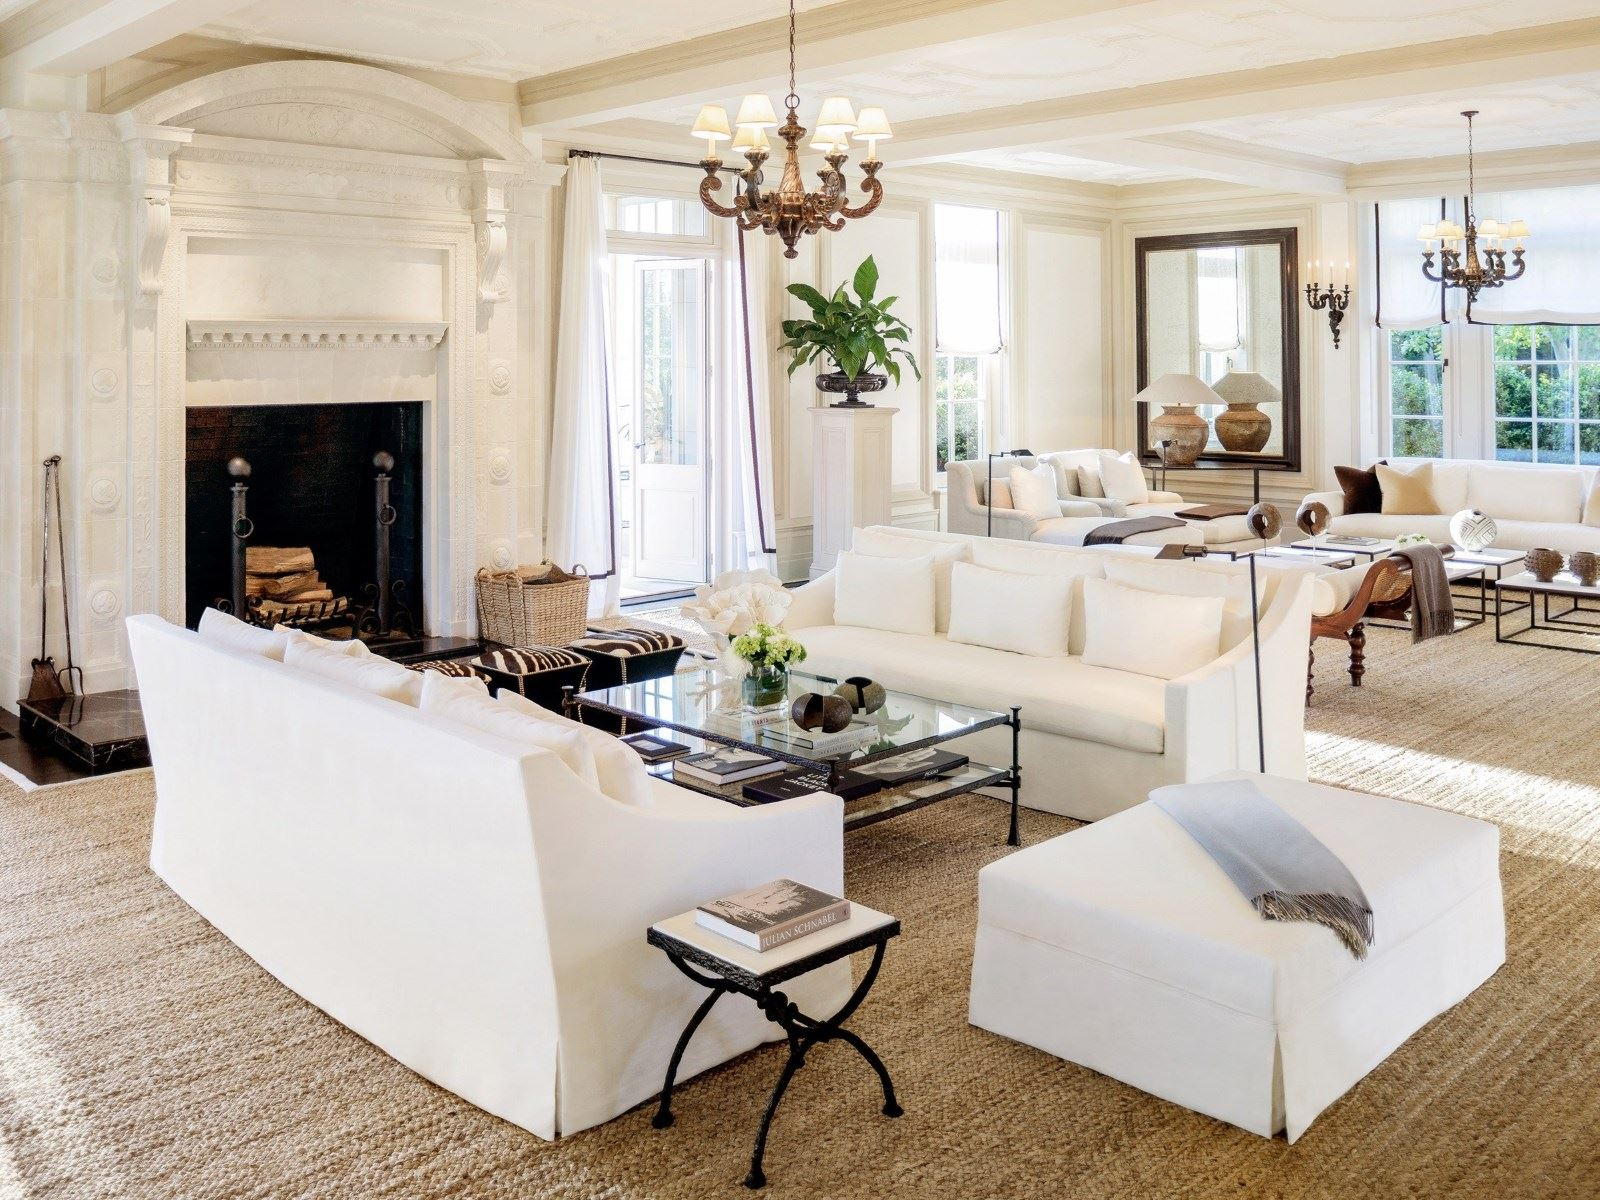 Dreamhome for sale in the hamptons ny morits london - Housses canapes ikea ...